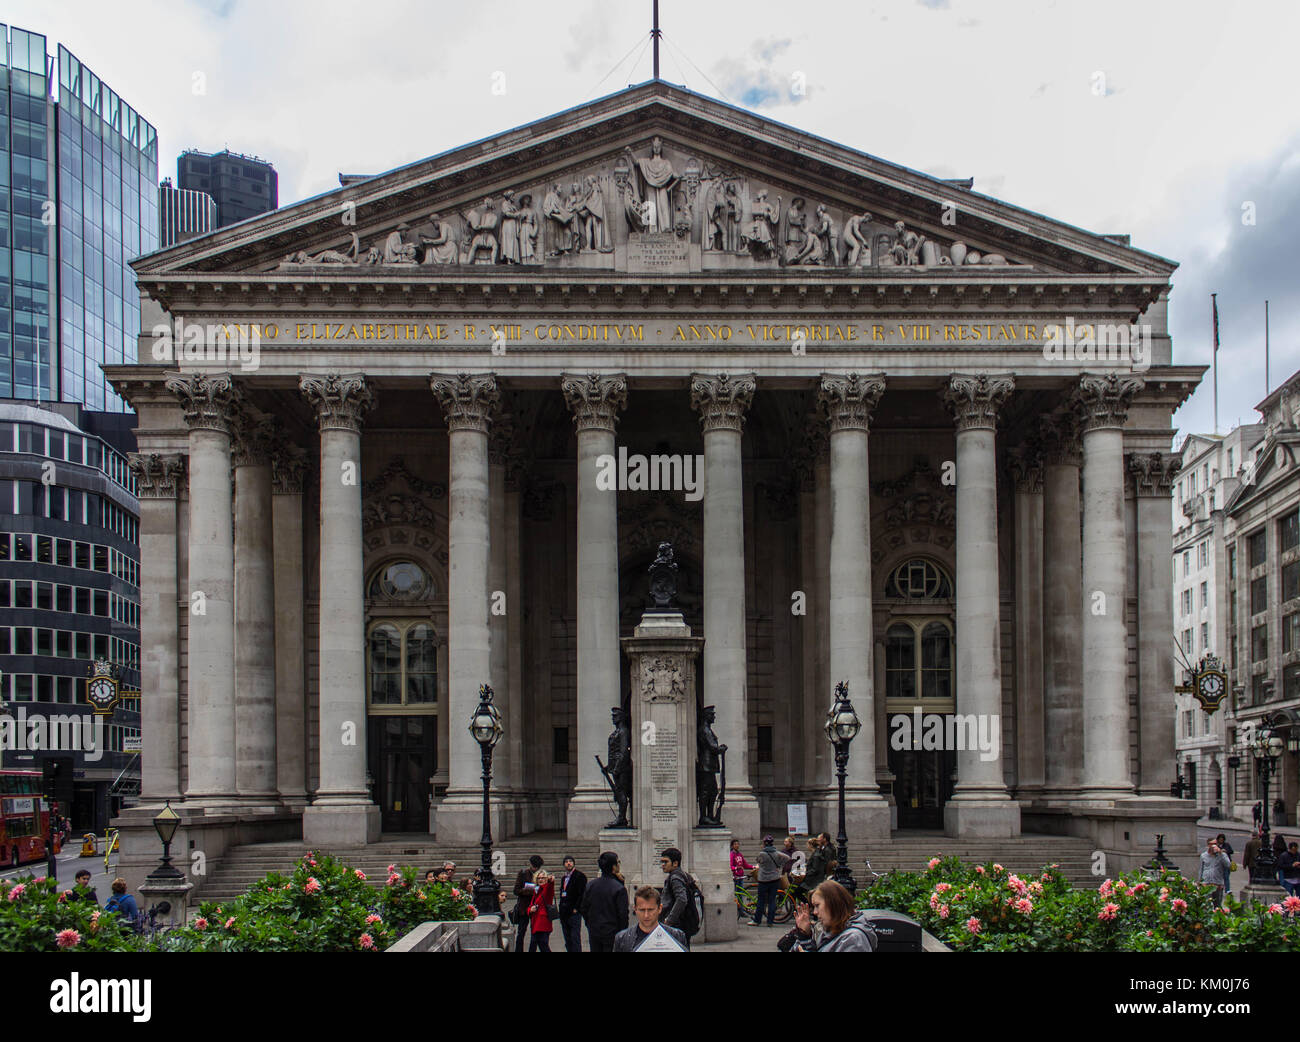 The Palladian style entrance of the Royal Exchange building in London. It has amazing engravings at the top of it - Stock Image